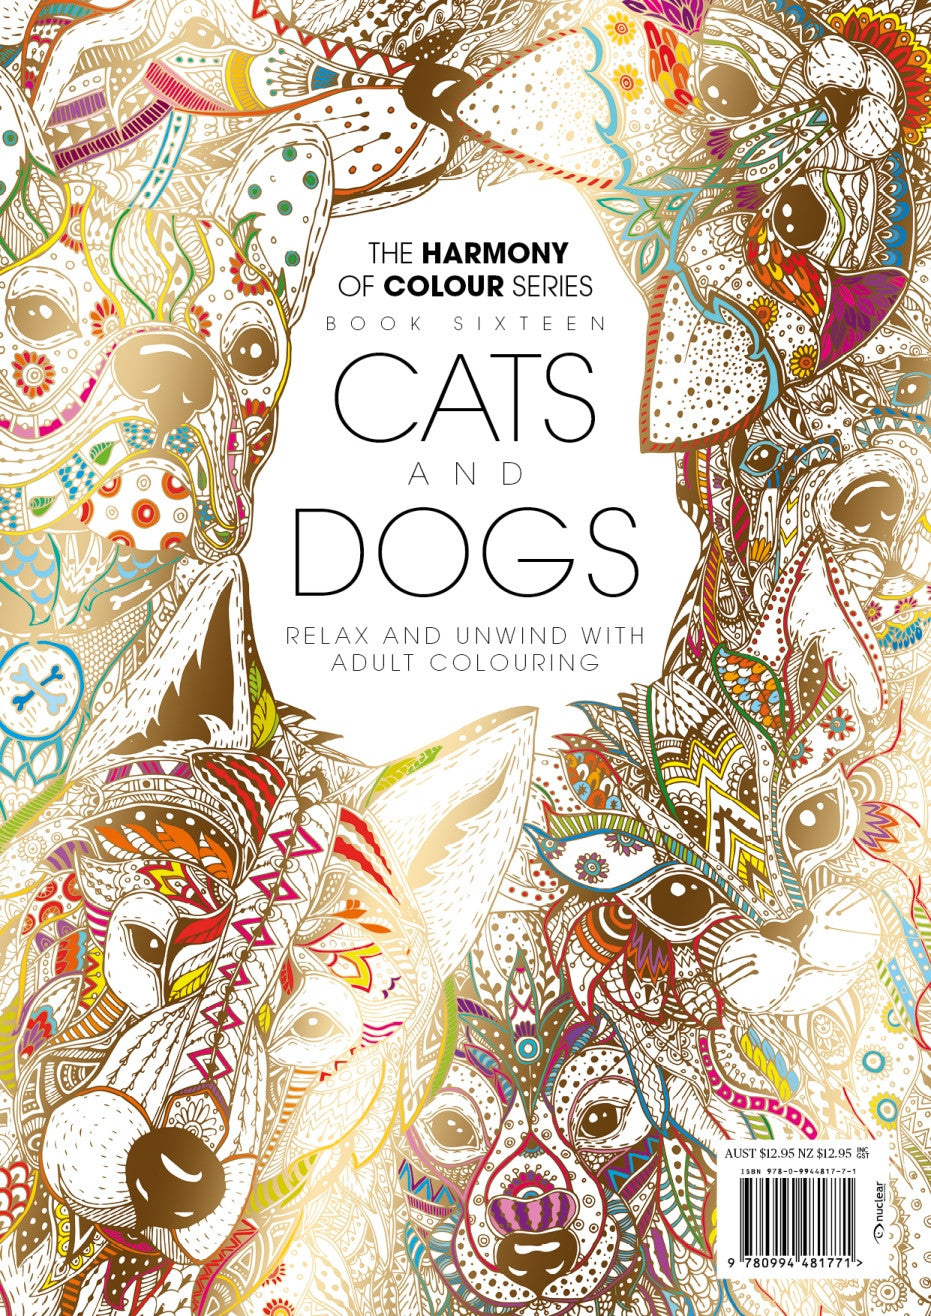 Harmony Of Colour Book Sixteen Cats And Dogs PRINT EDITION SOLD OUT